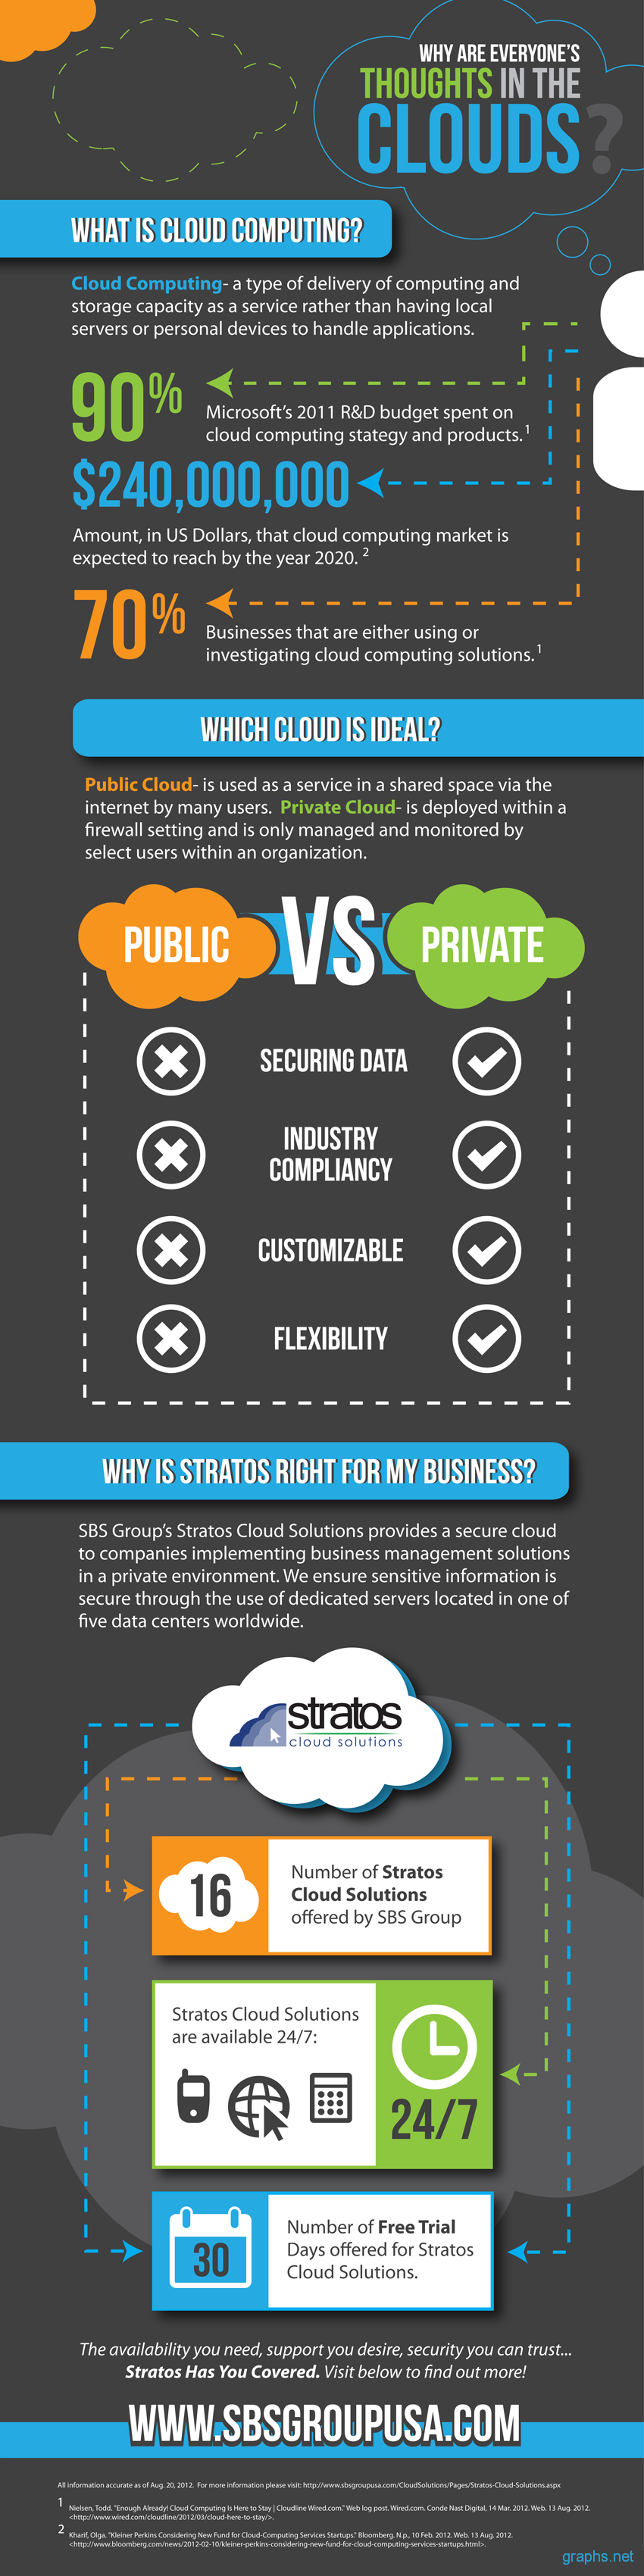 Importance of Cloud Computing for Businesses